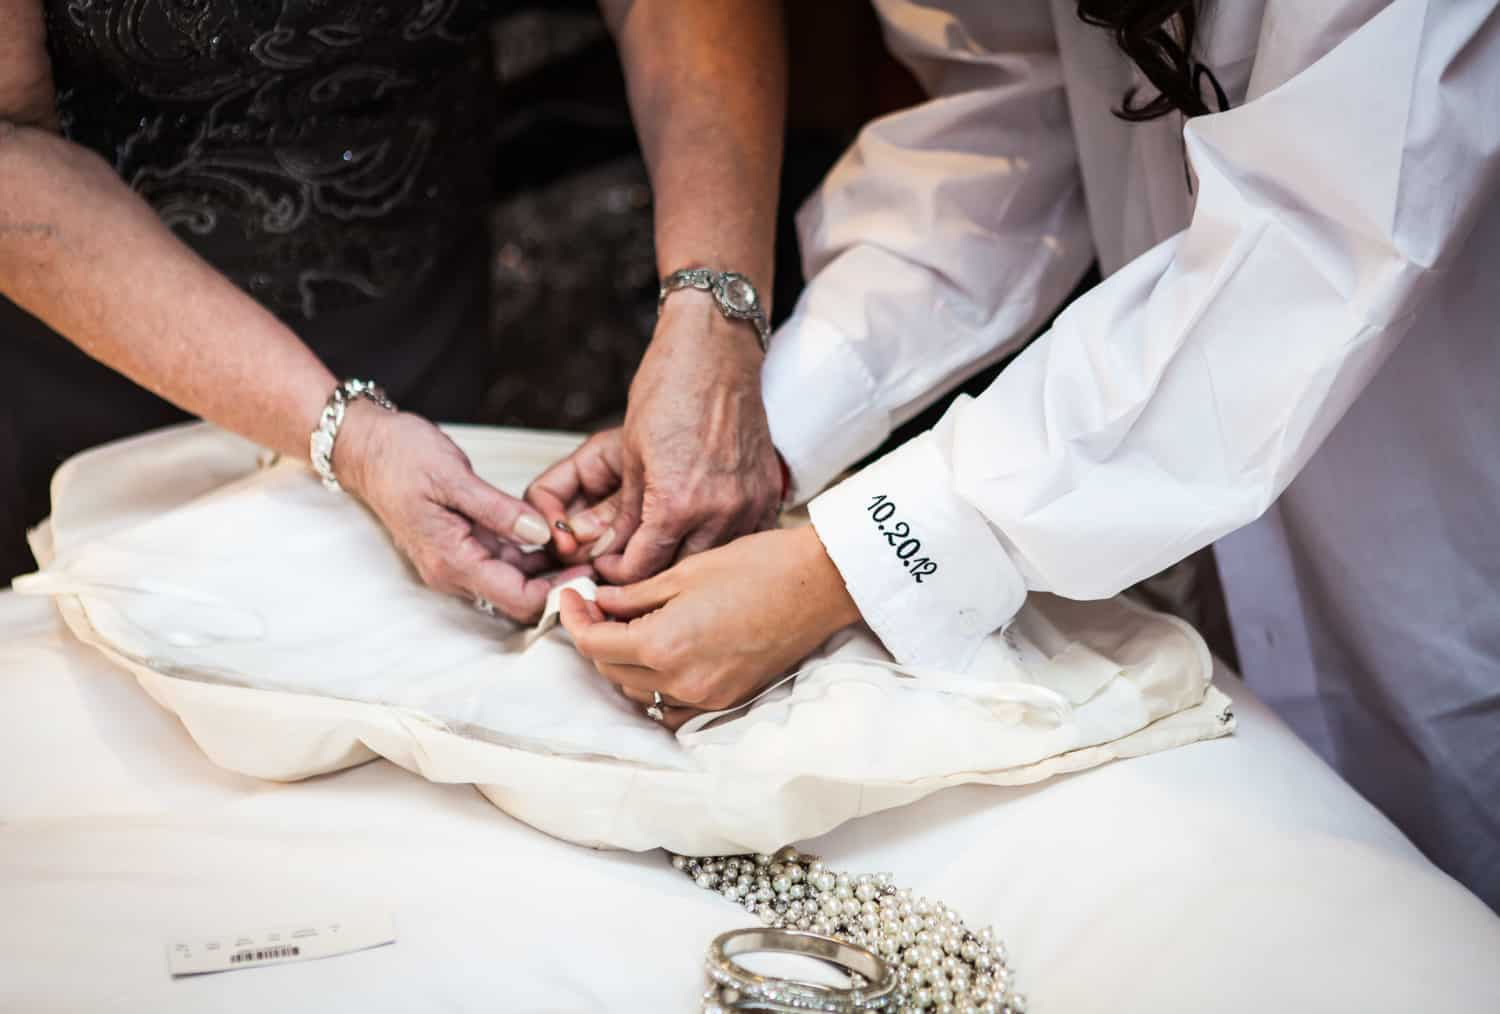 Hands fixing wedding dress